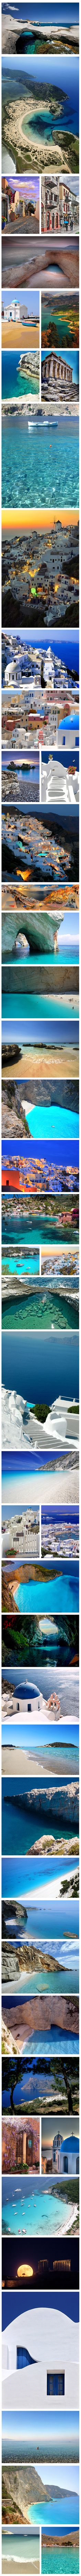 Greece! Travelled there a few times but some of these places I still would like to visit.